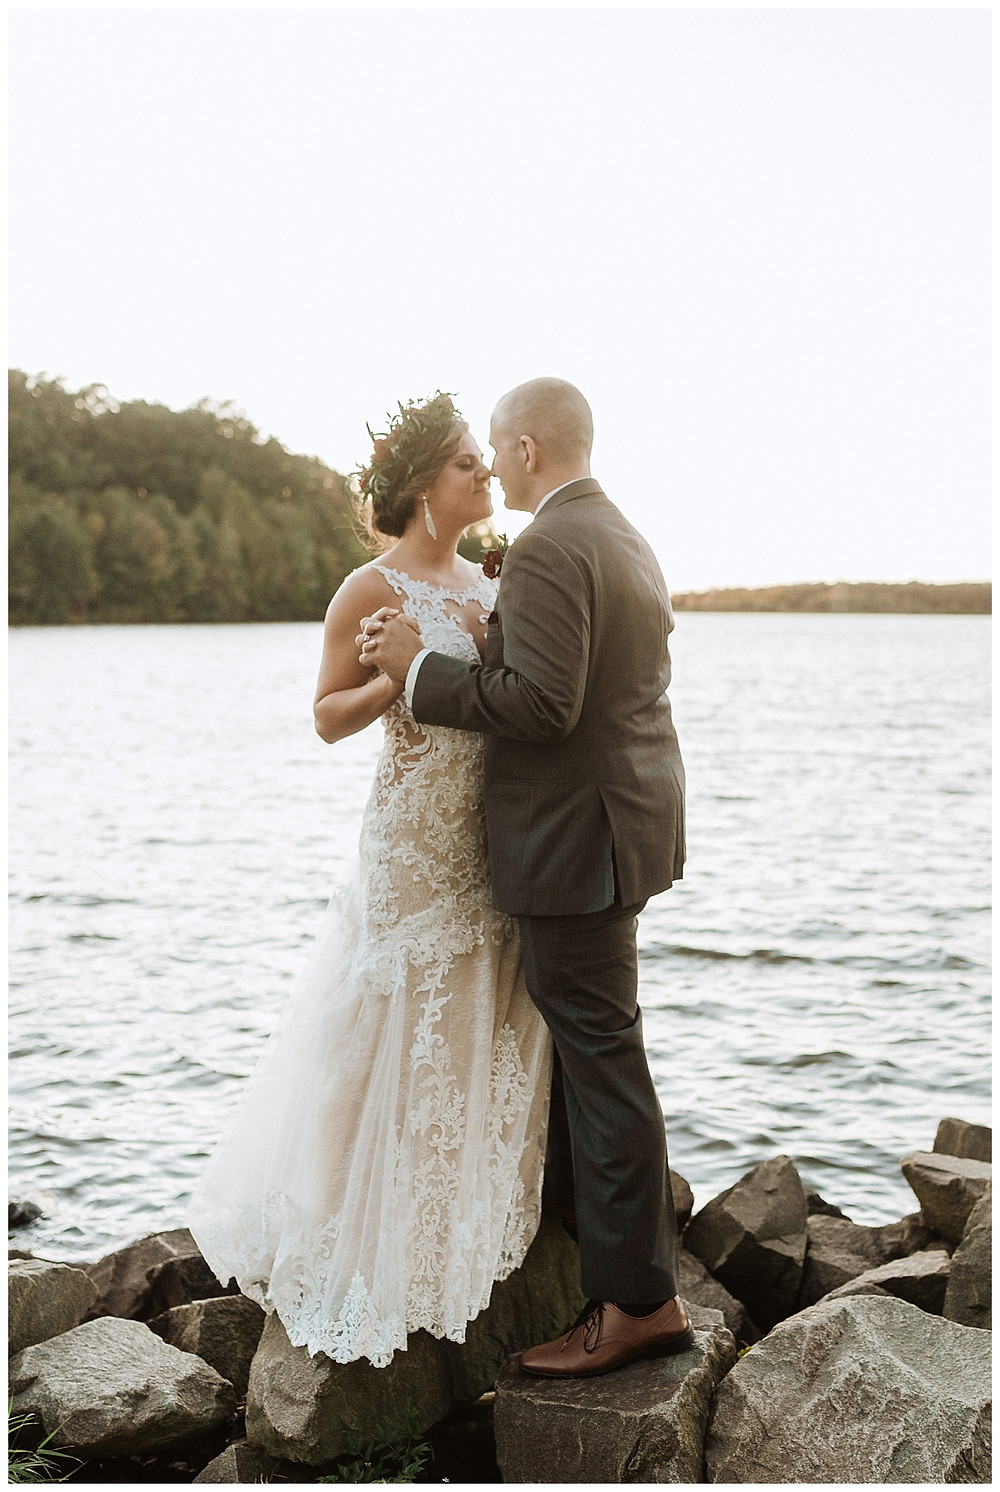 Sunset Lakeside Bride & Groom Portraits